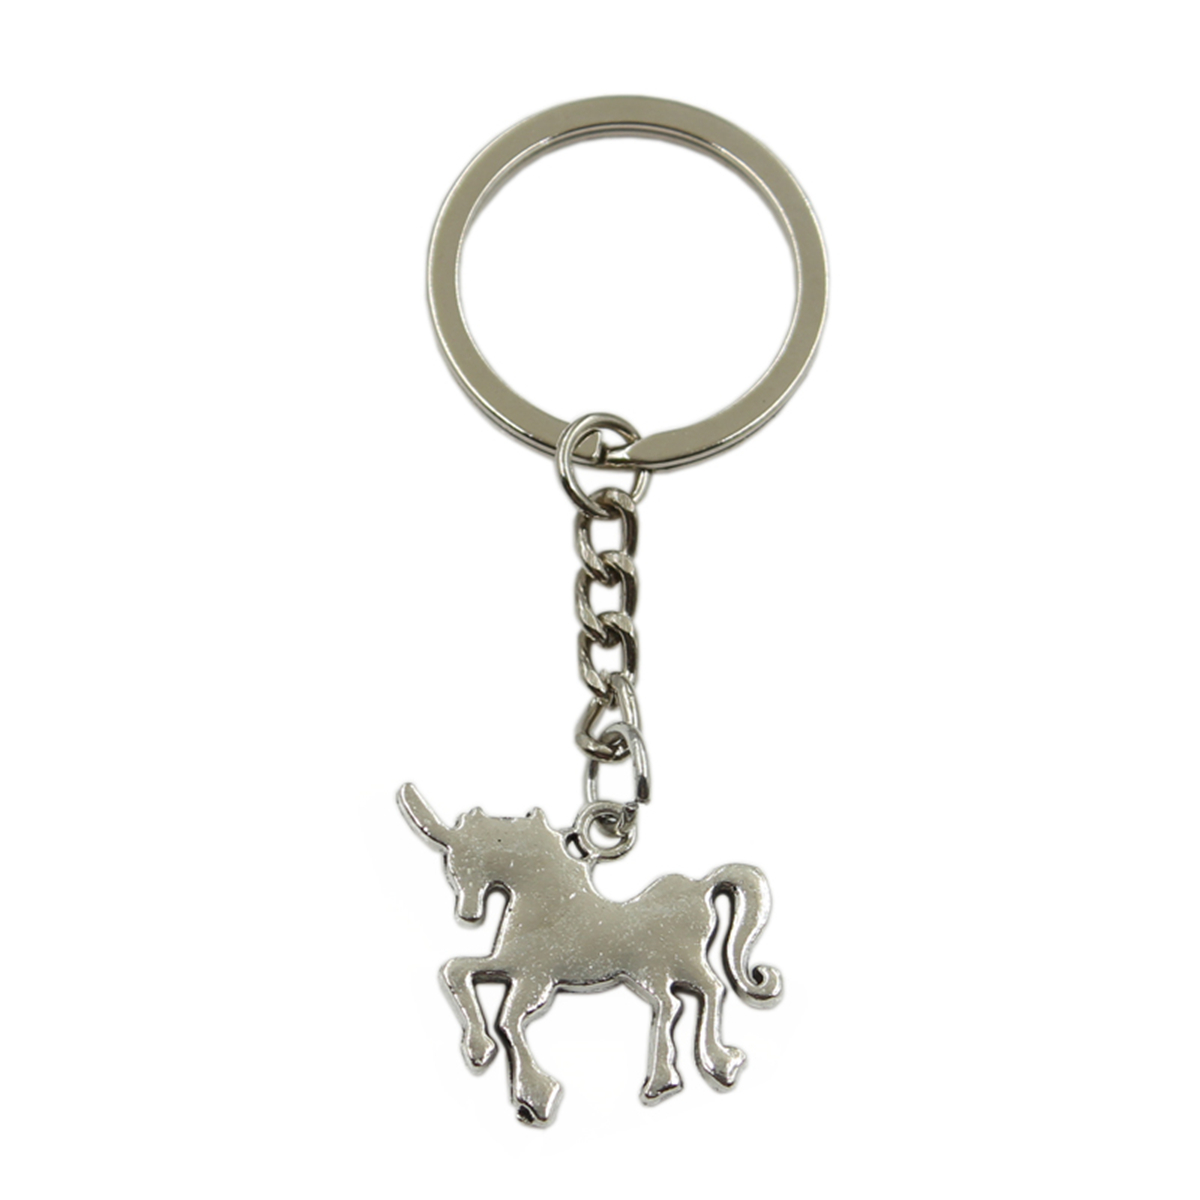 New Hot Men Key Ring Metal Key Chain Keychain Gift Jewelry Silver Color Horse Unicorn Pendant Great Promotion